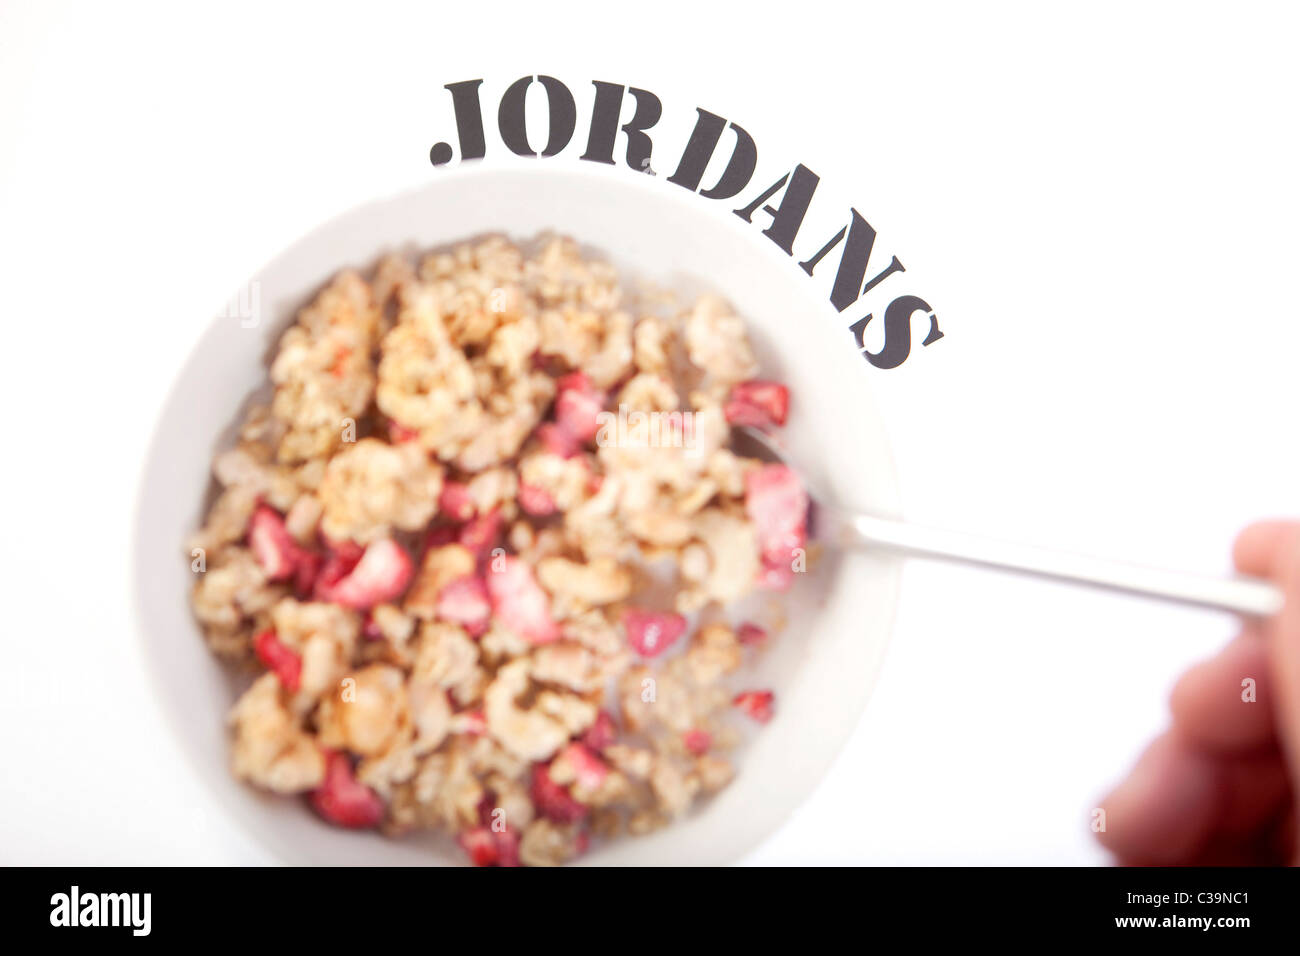 Illustrative image of Jordans Country Crisp cereal, a brand operated by Associated British Foods. - Stock Image